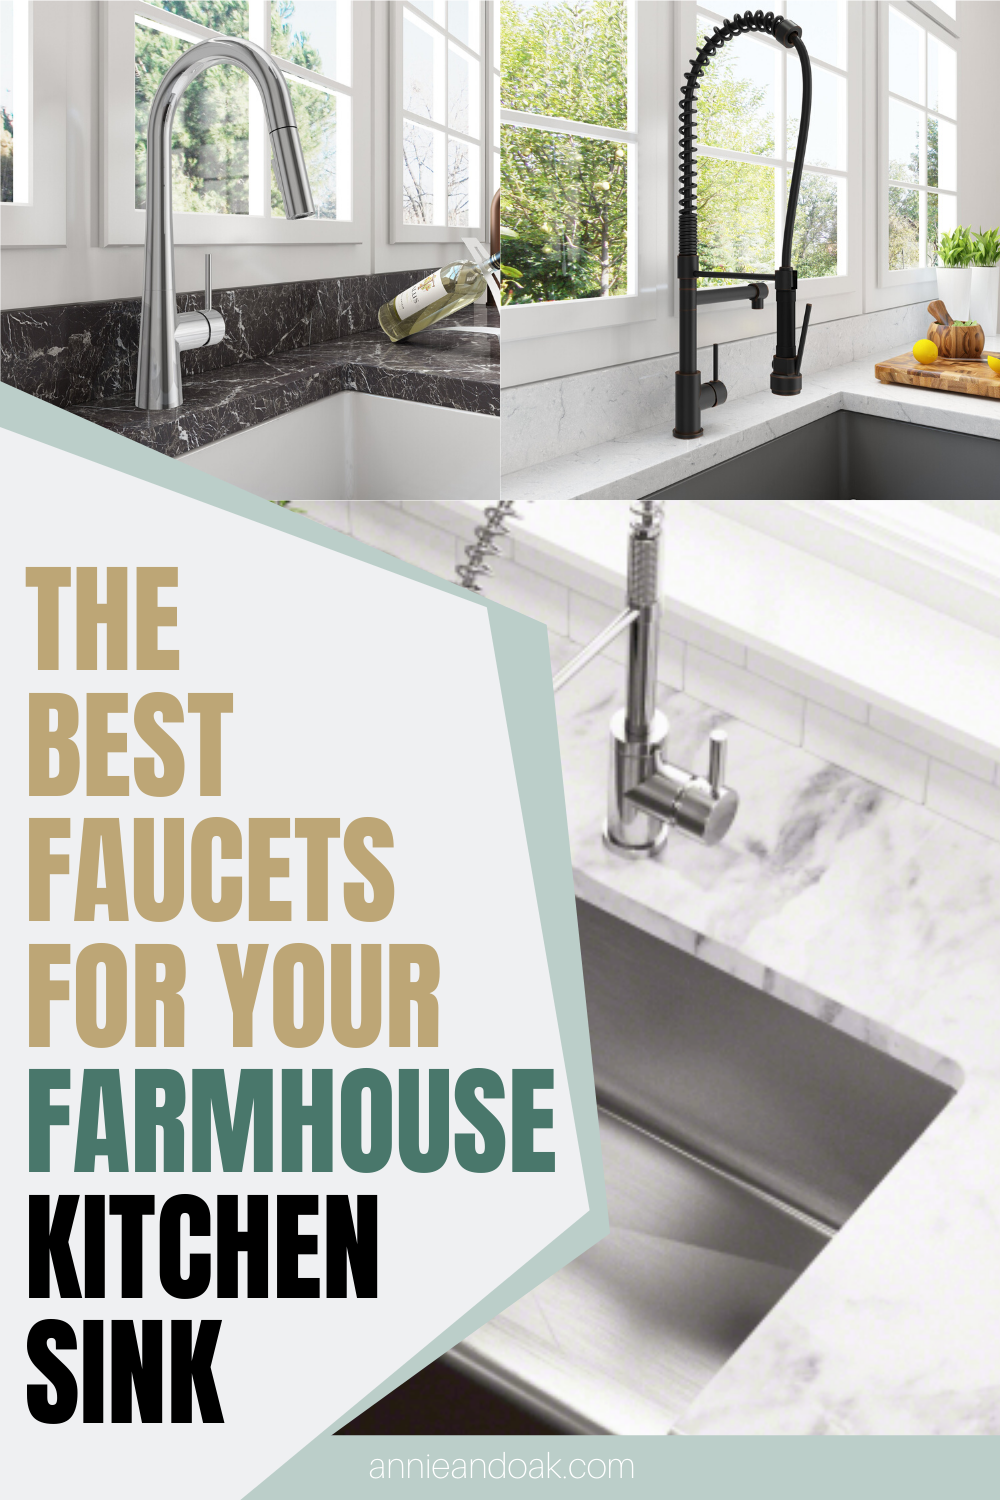 The Best Faucets For Your Farmhouse Kitchen Sink Best Faucet Farmhouse Style Kitchen Farmhouse Sink Kitchen